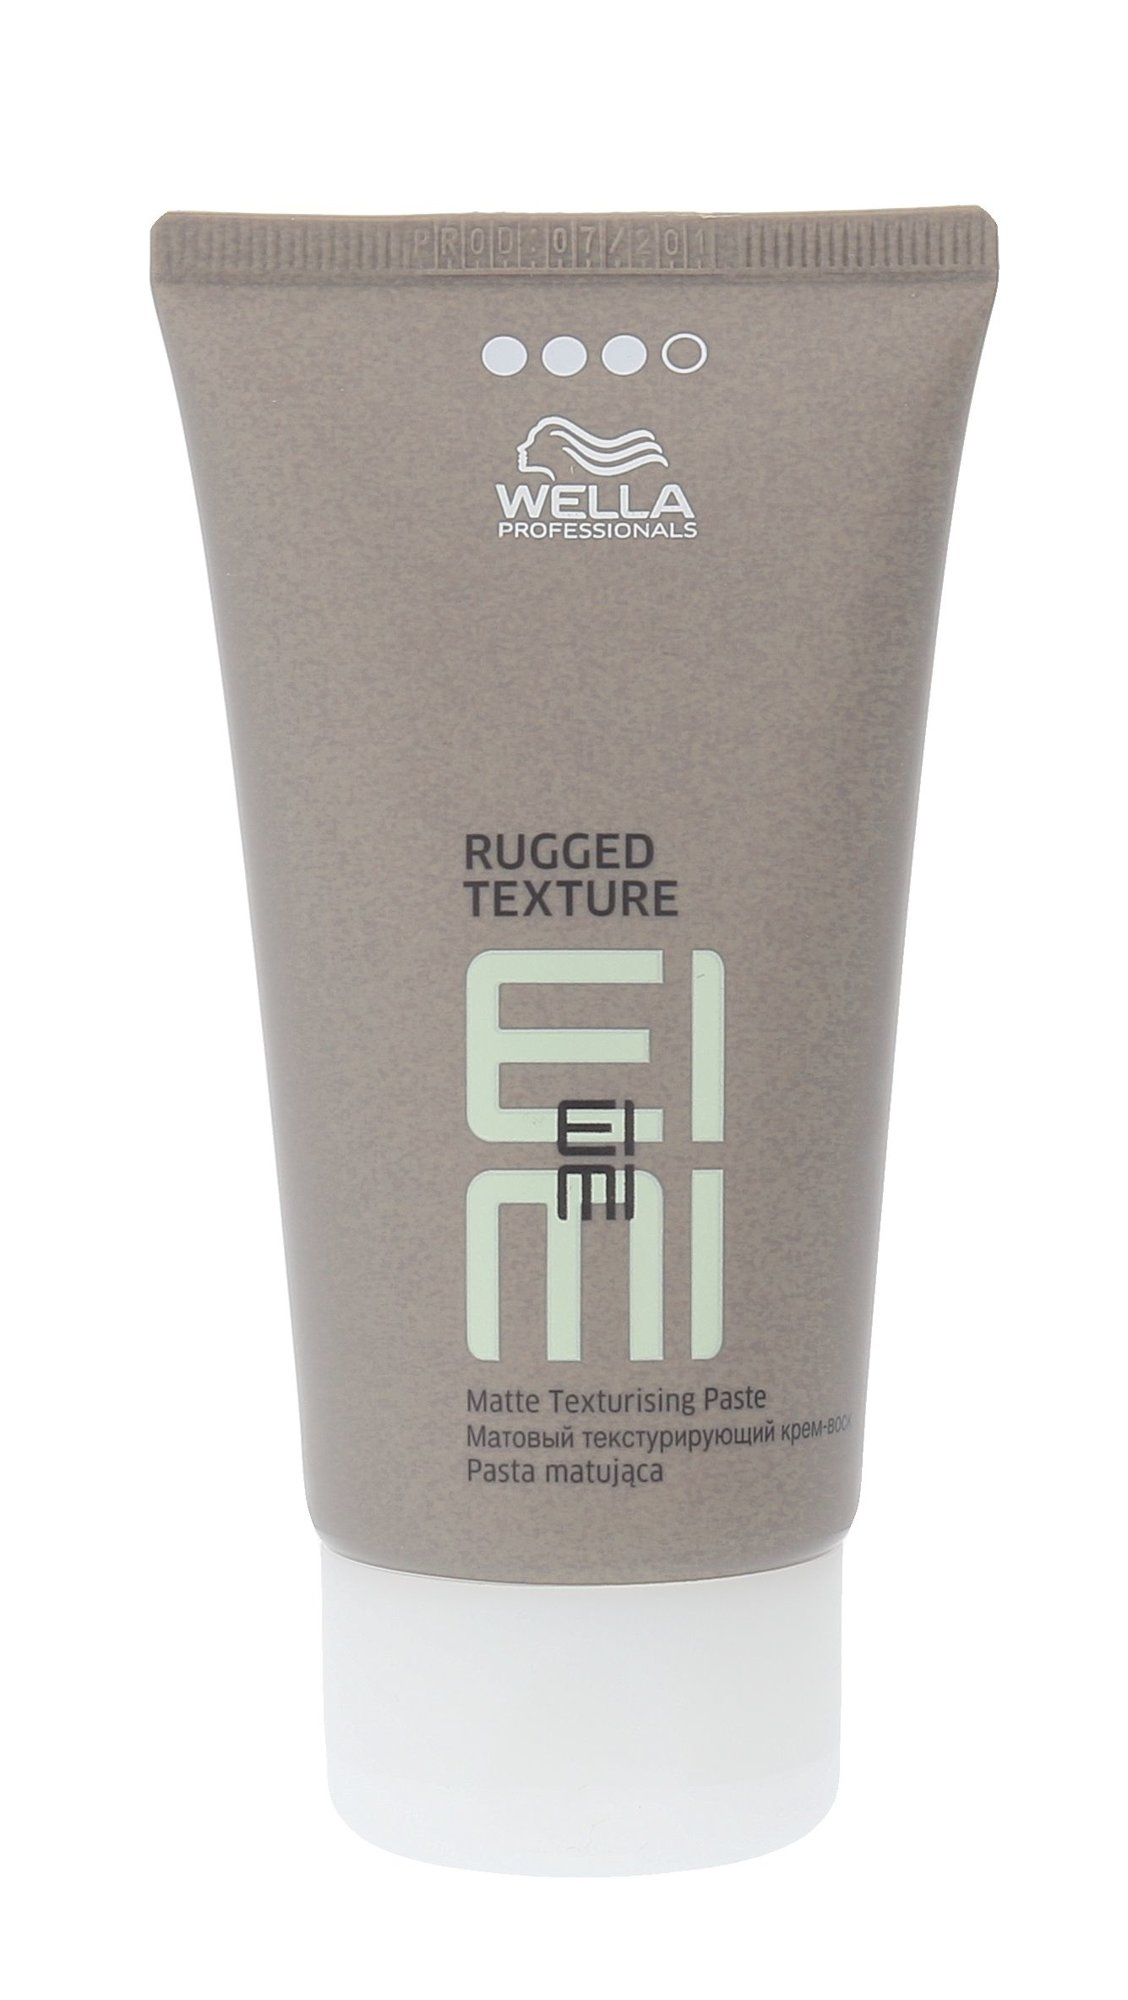 Wella Eimi Rugged Texture Matte Texturising Paste Cosmetic 75ml